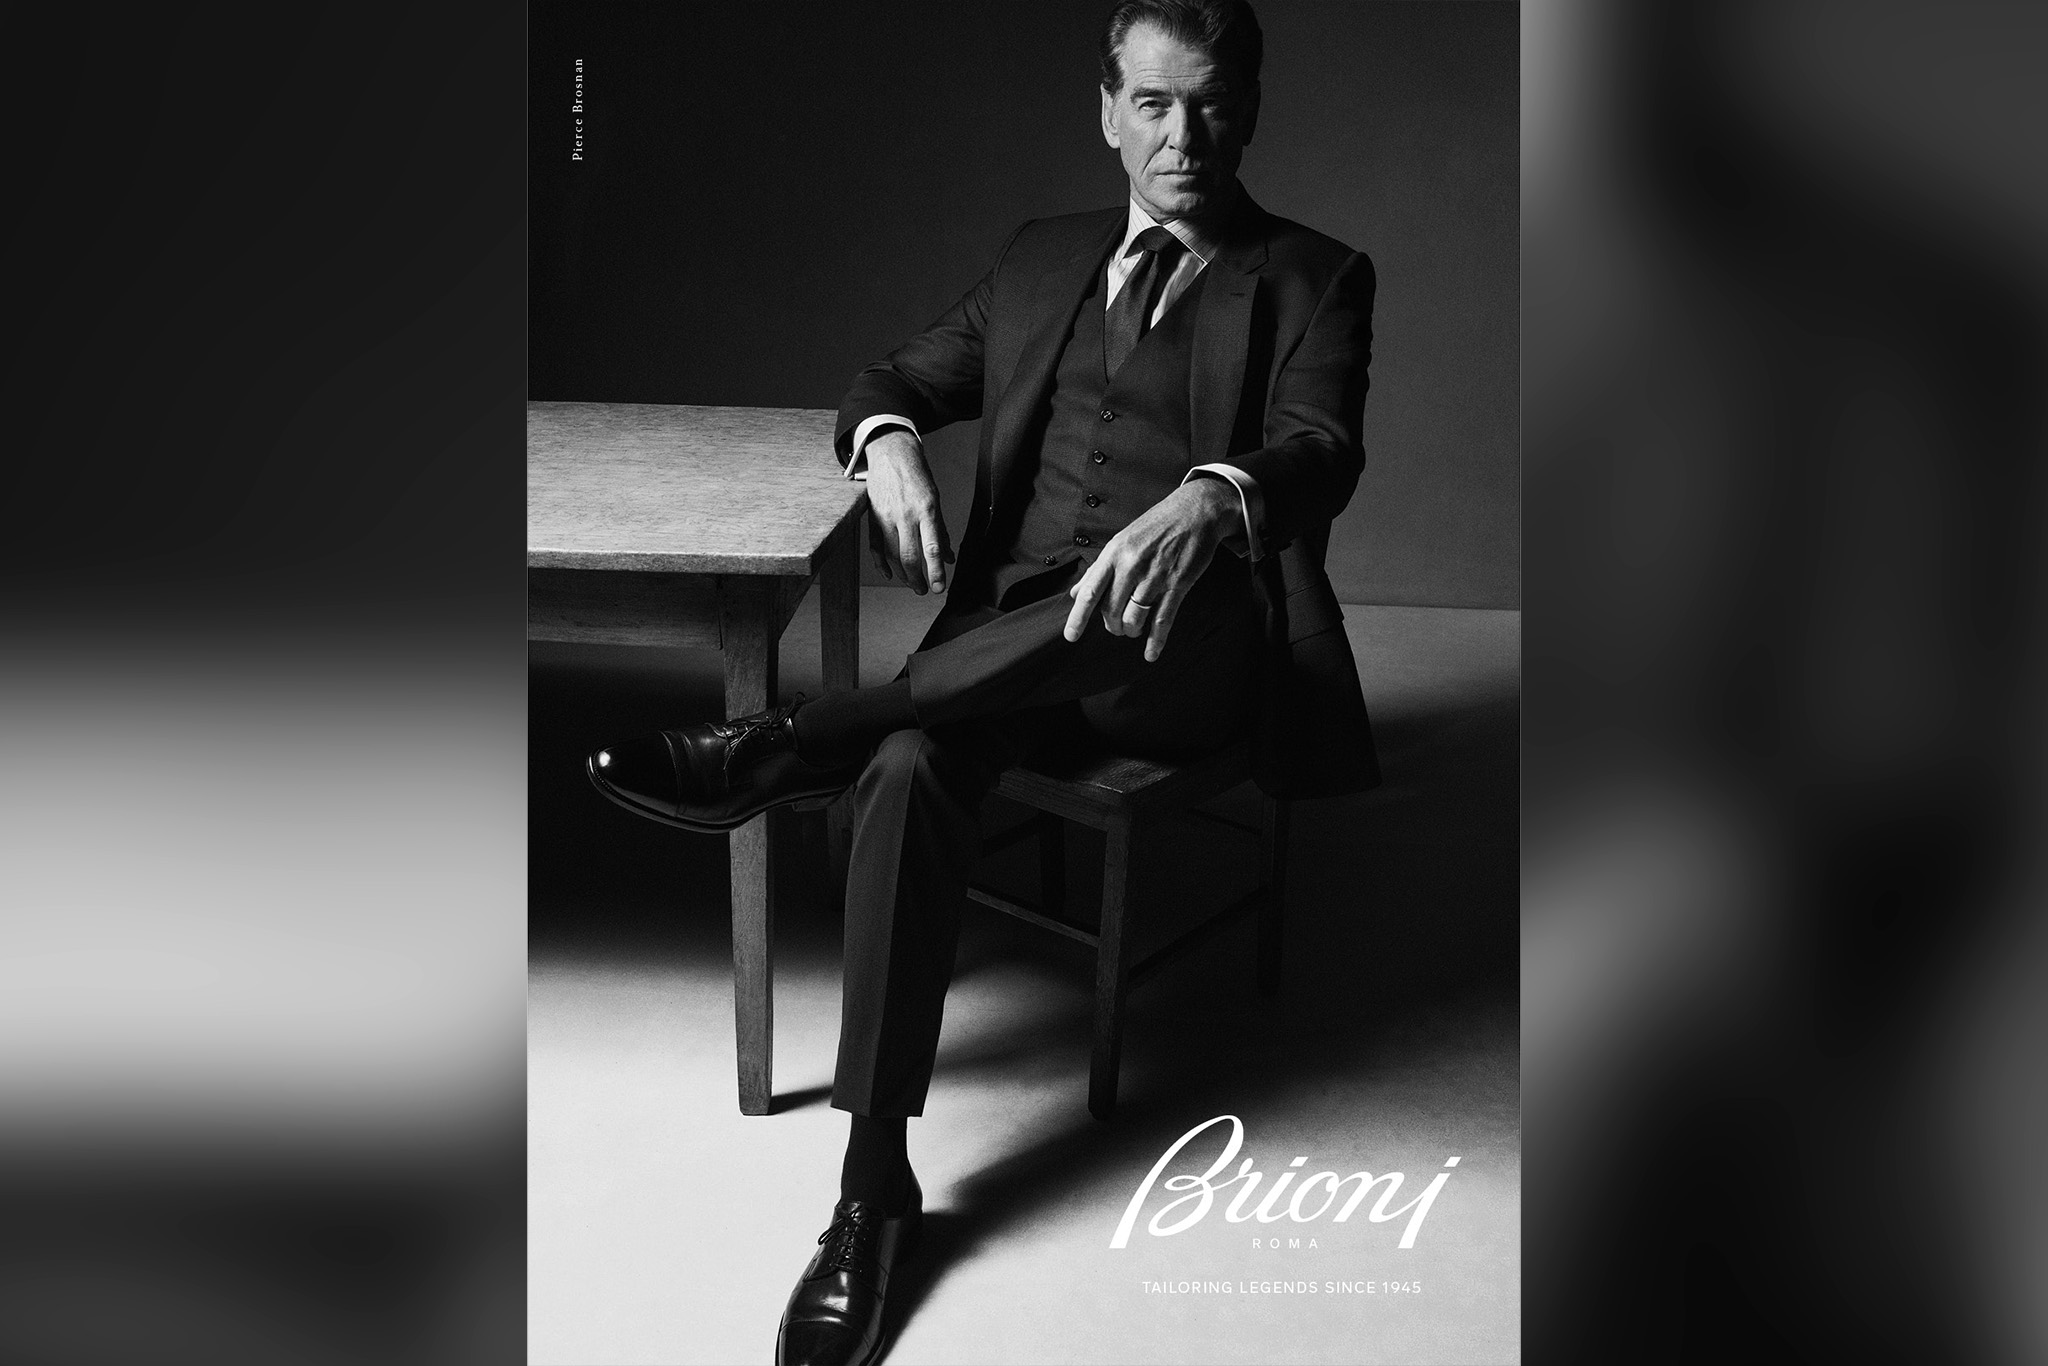 Pierce Brosnan in the new Brioni ads.